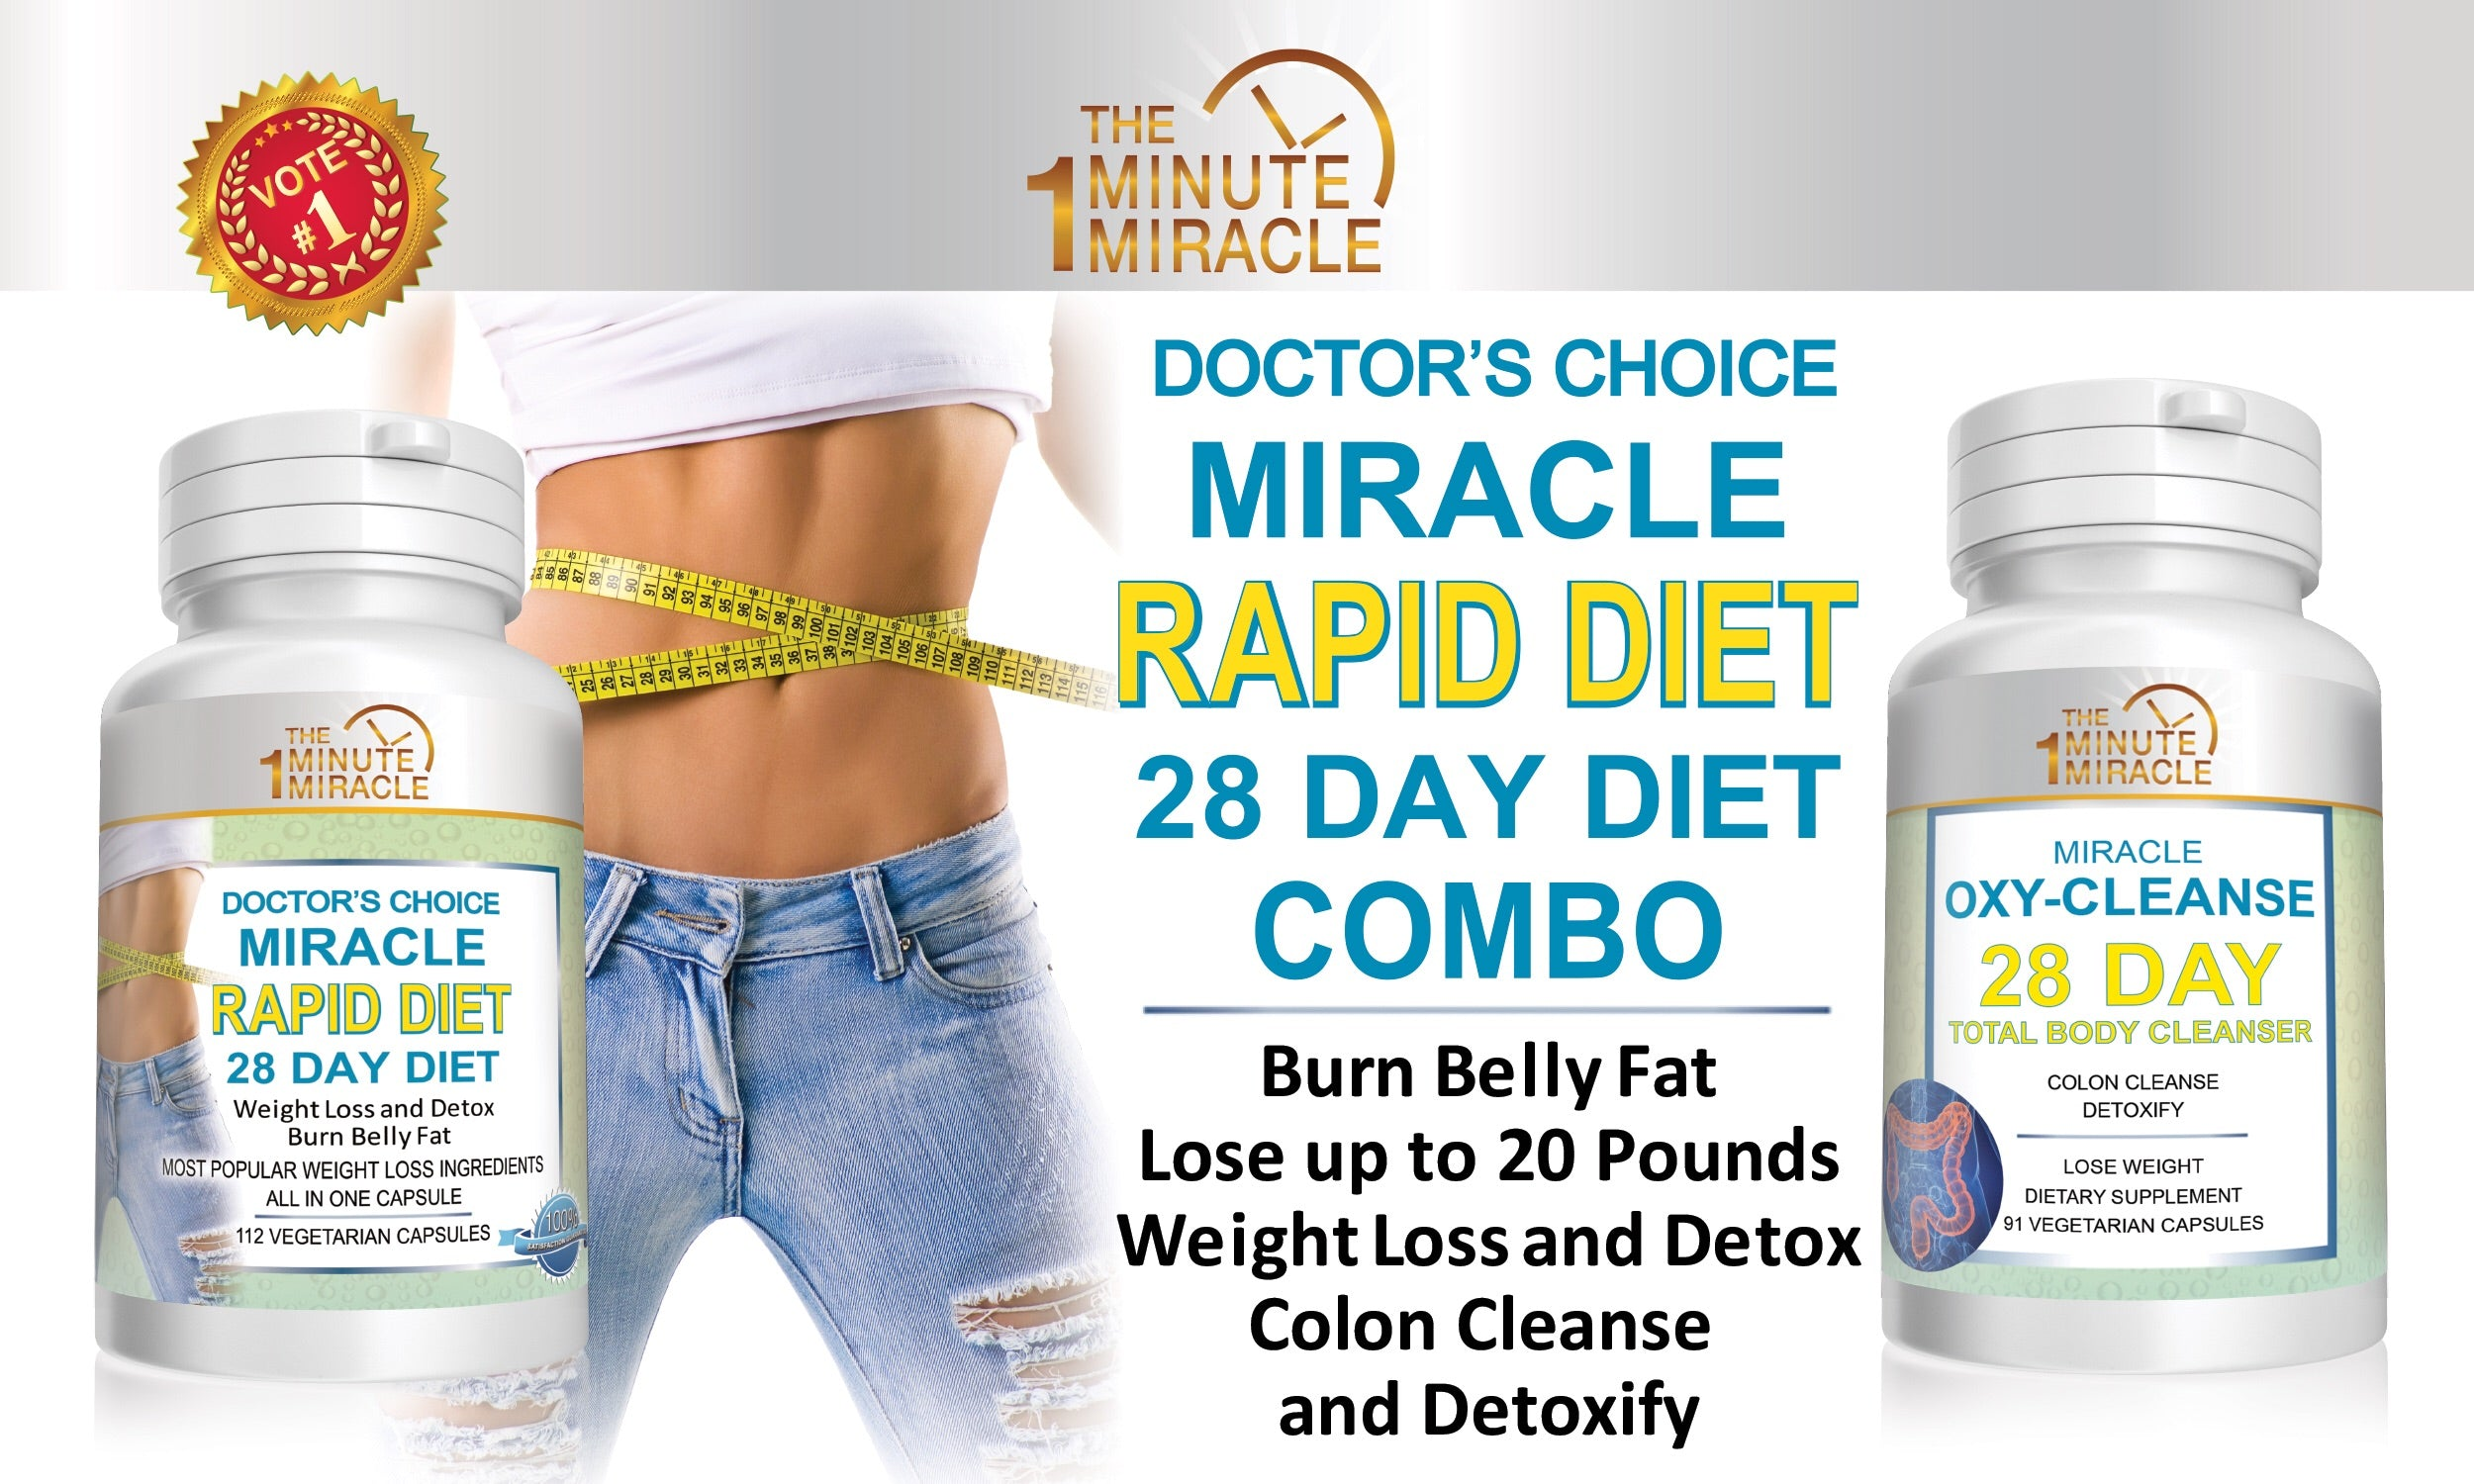 28 DAY DIET  COMBO - Lose Up To 20 Pounds